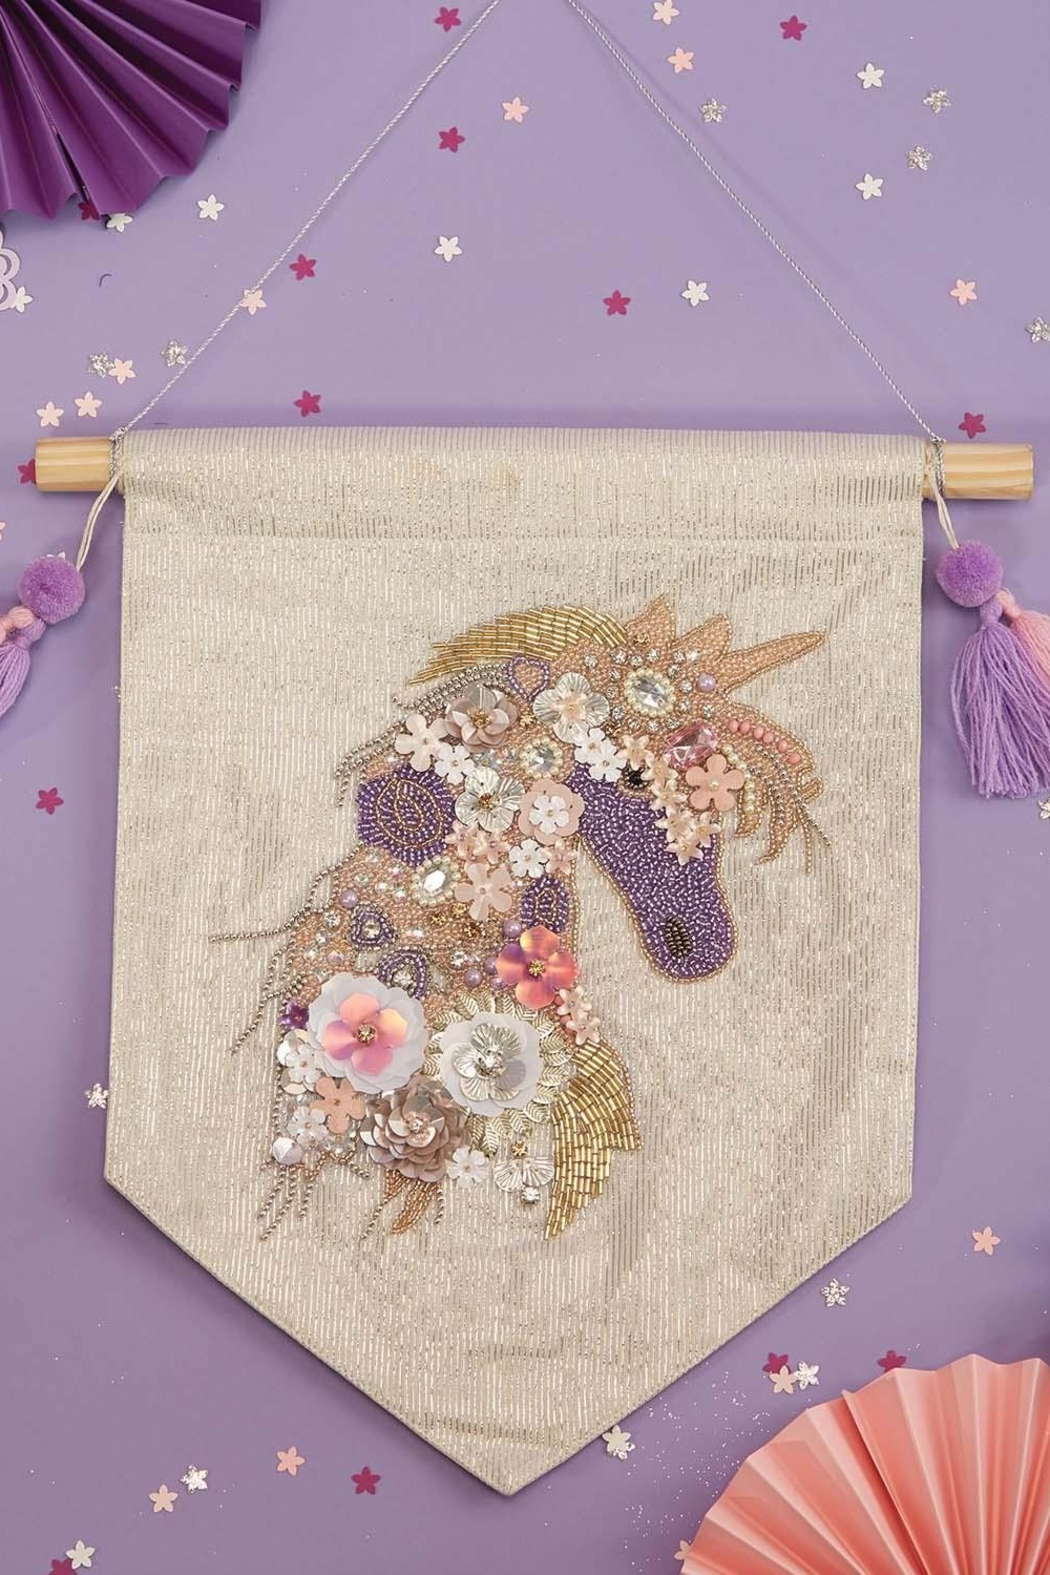 The Birds Nest Unicorn Embellished Wall Decor - Main Image